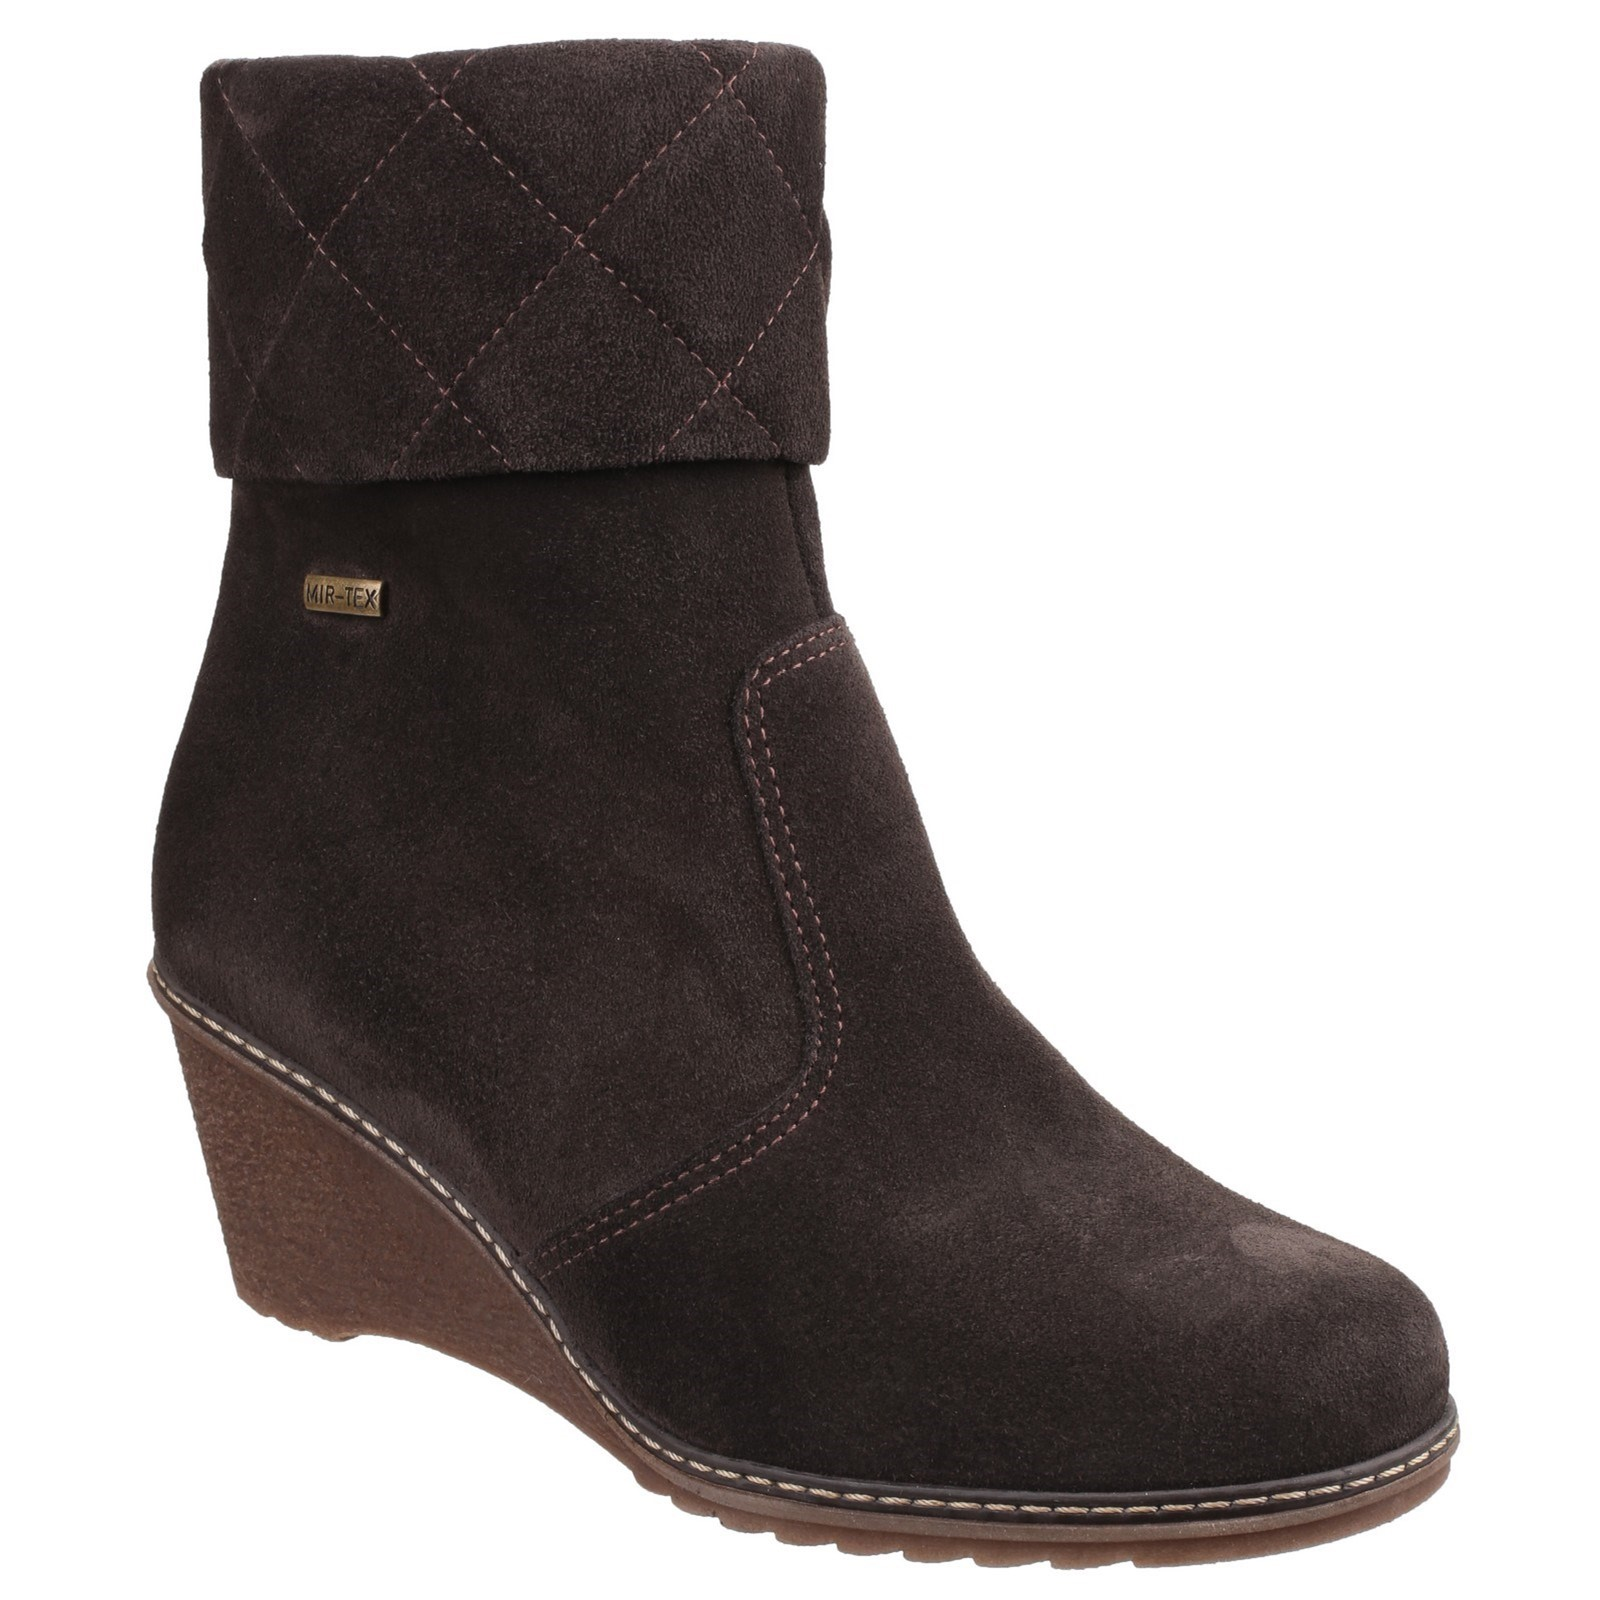 Cotswold-Mujer-Cornwell-Impermeable-Cremallera-Botines